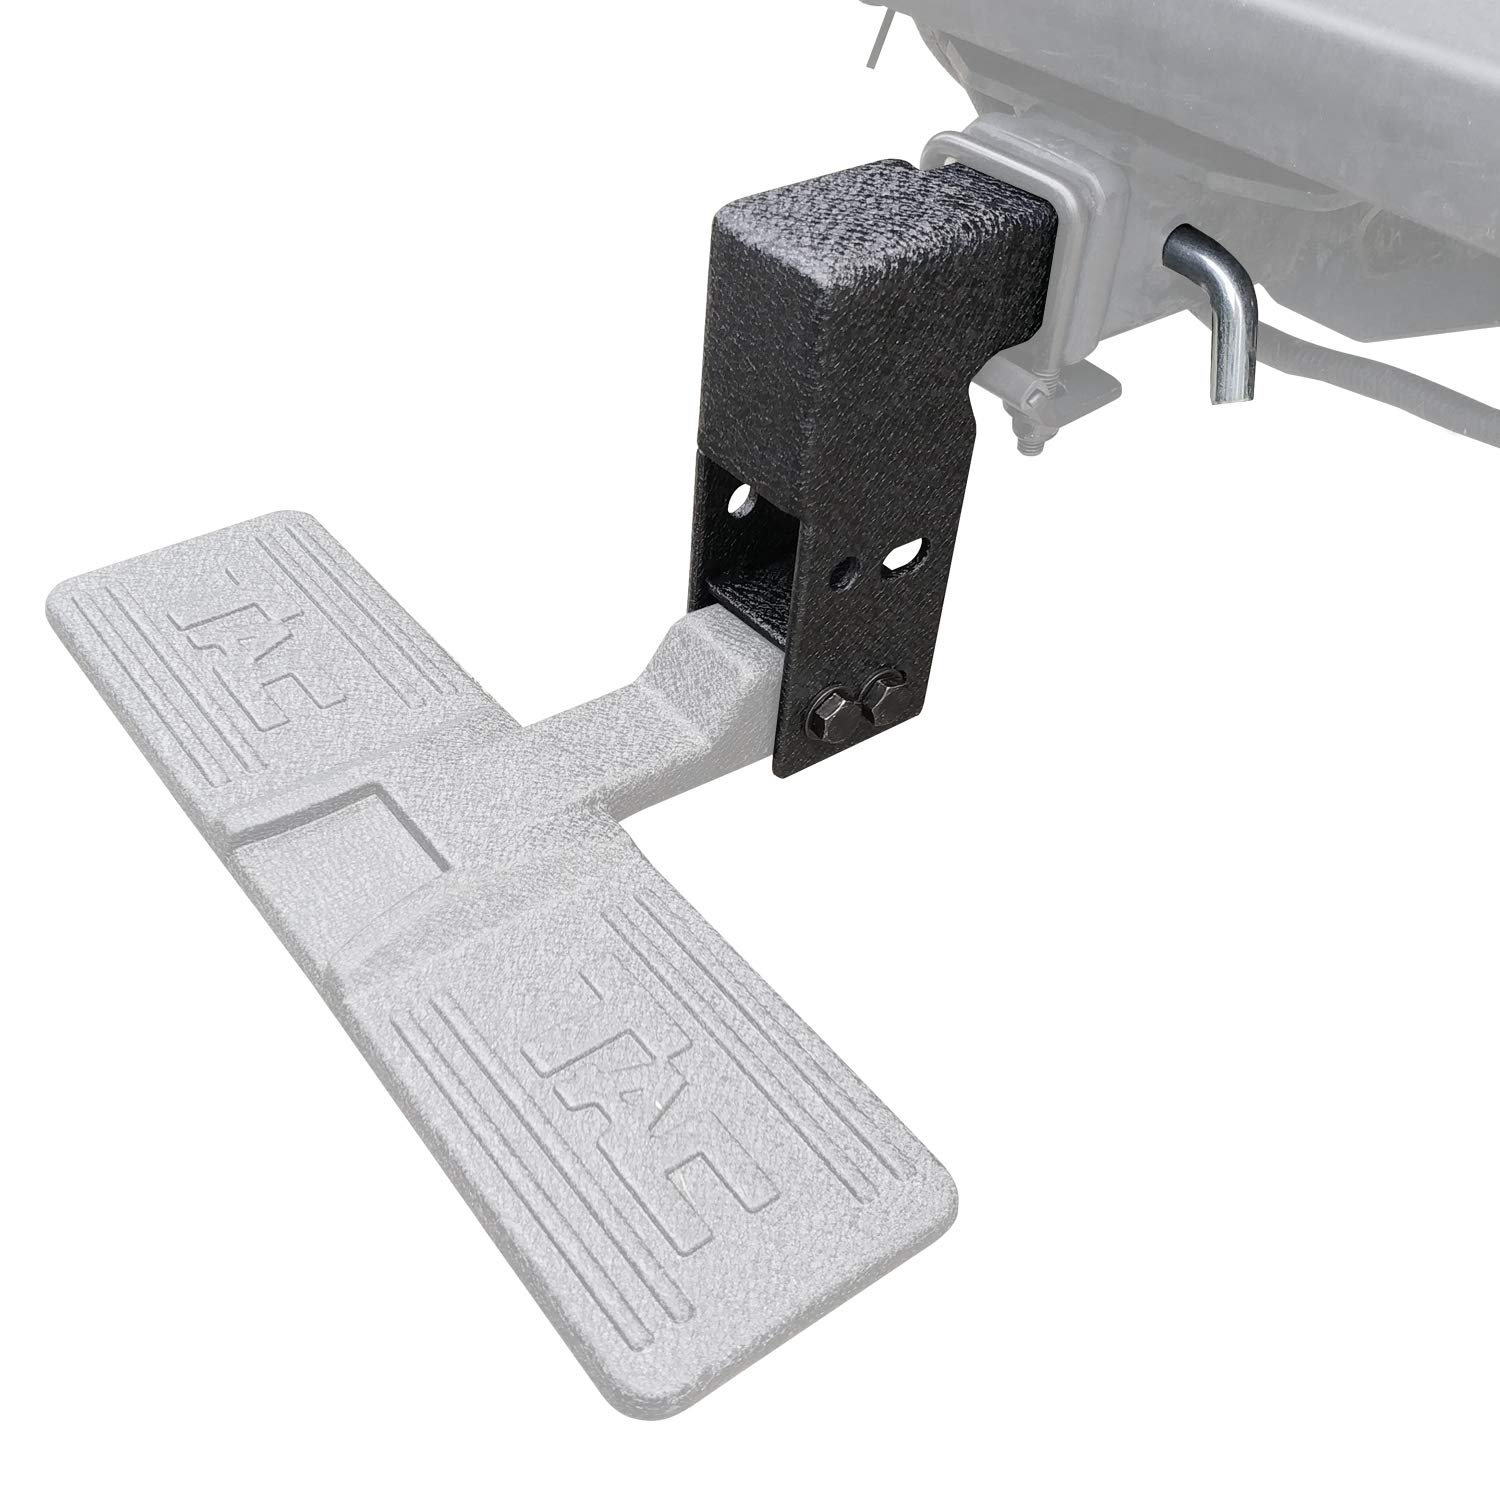 TAC Universal Hitch Step Adjuster Fit Most Hitch Step Brand Selling on The Market/Two Stages Adjustable Drop Mount on 2'' Hitch Receiver by TAC TRUCK ACCESSORIES COMPANY